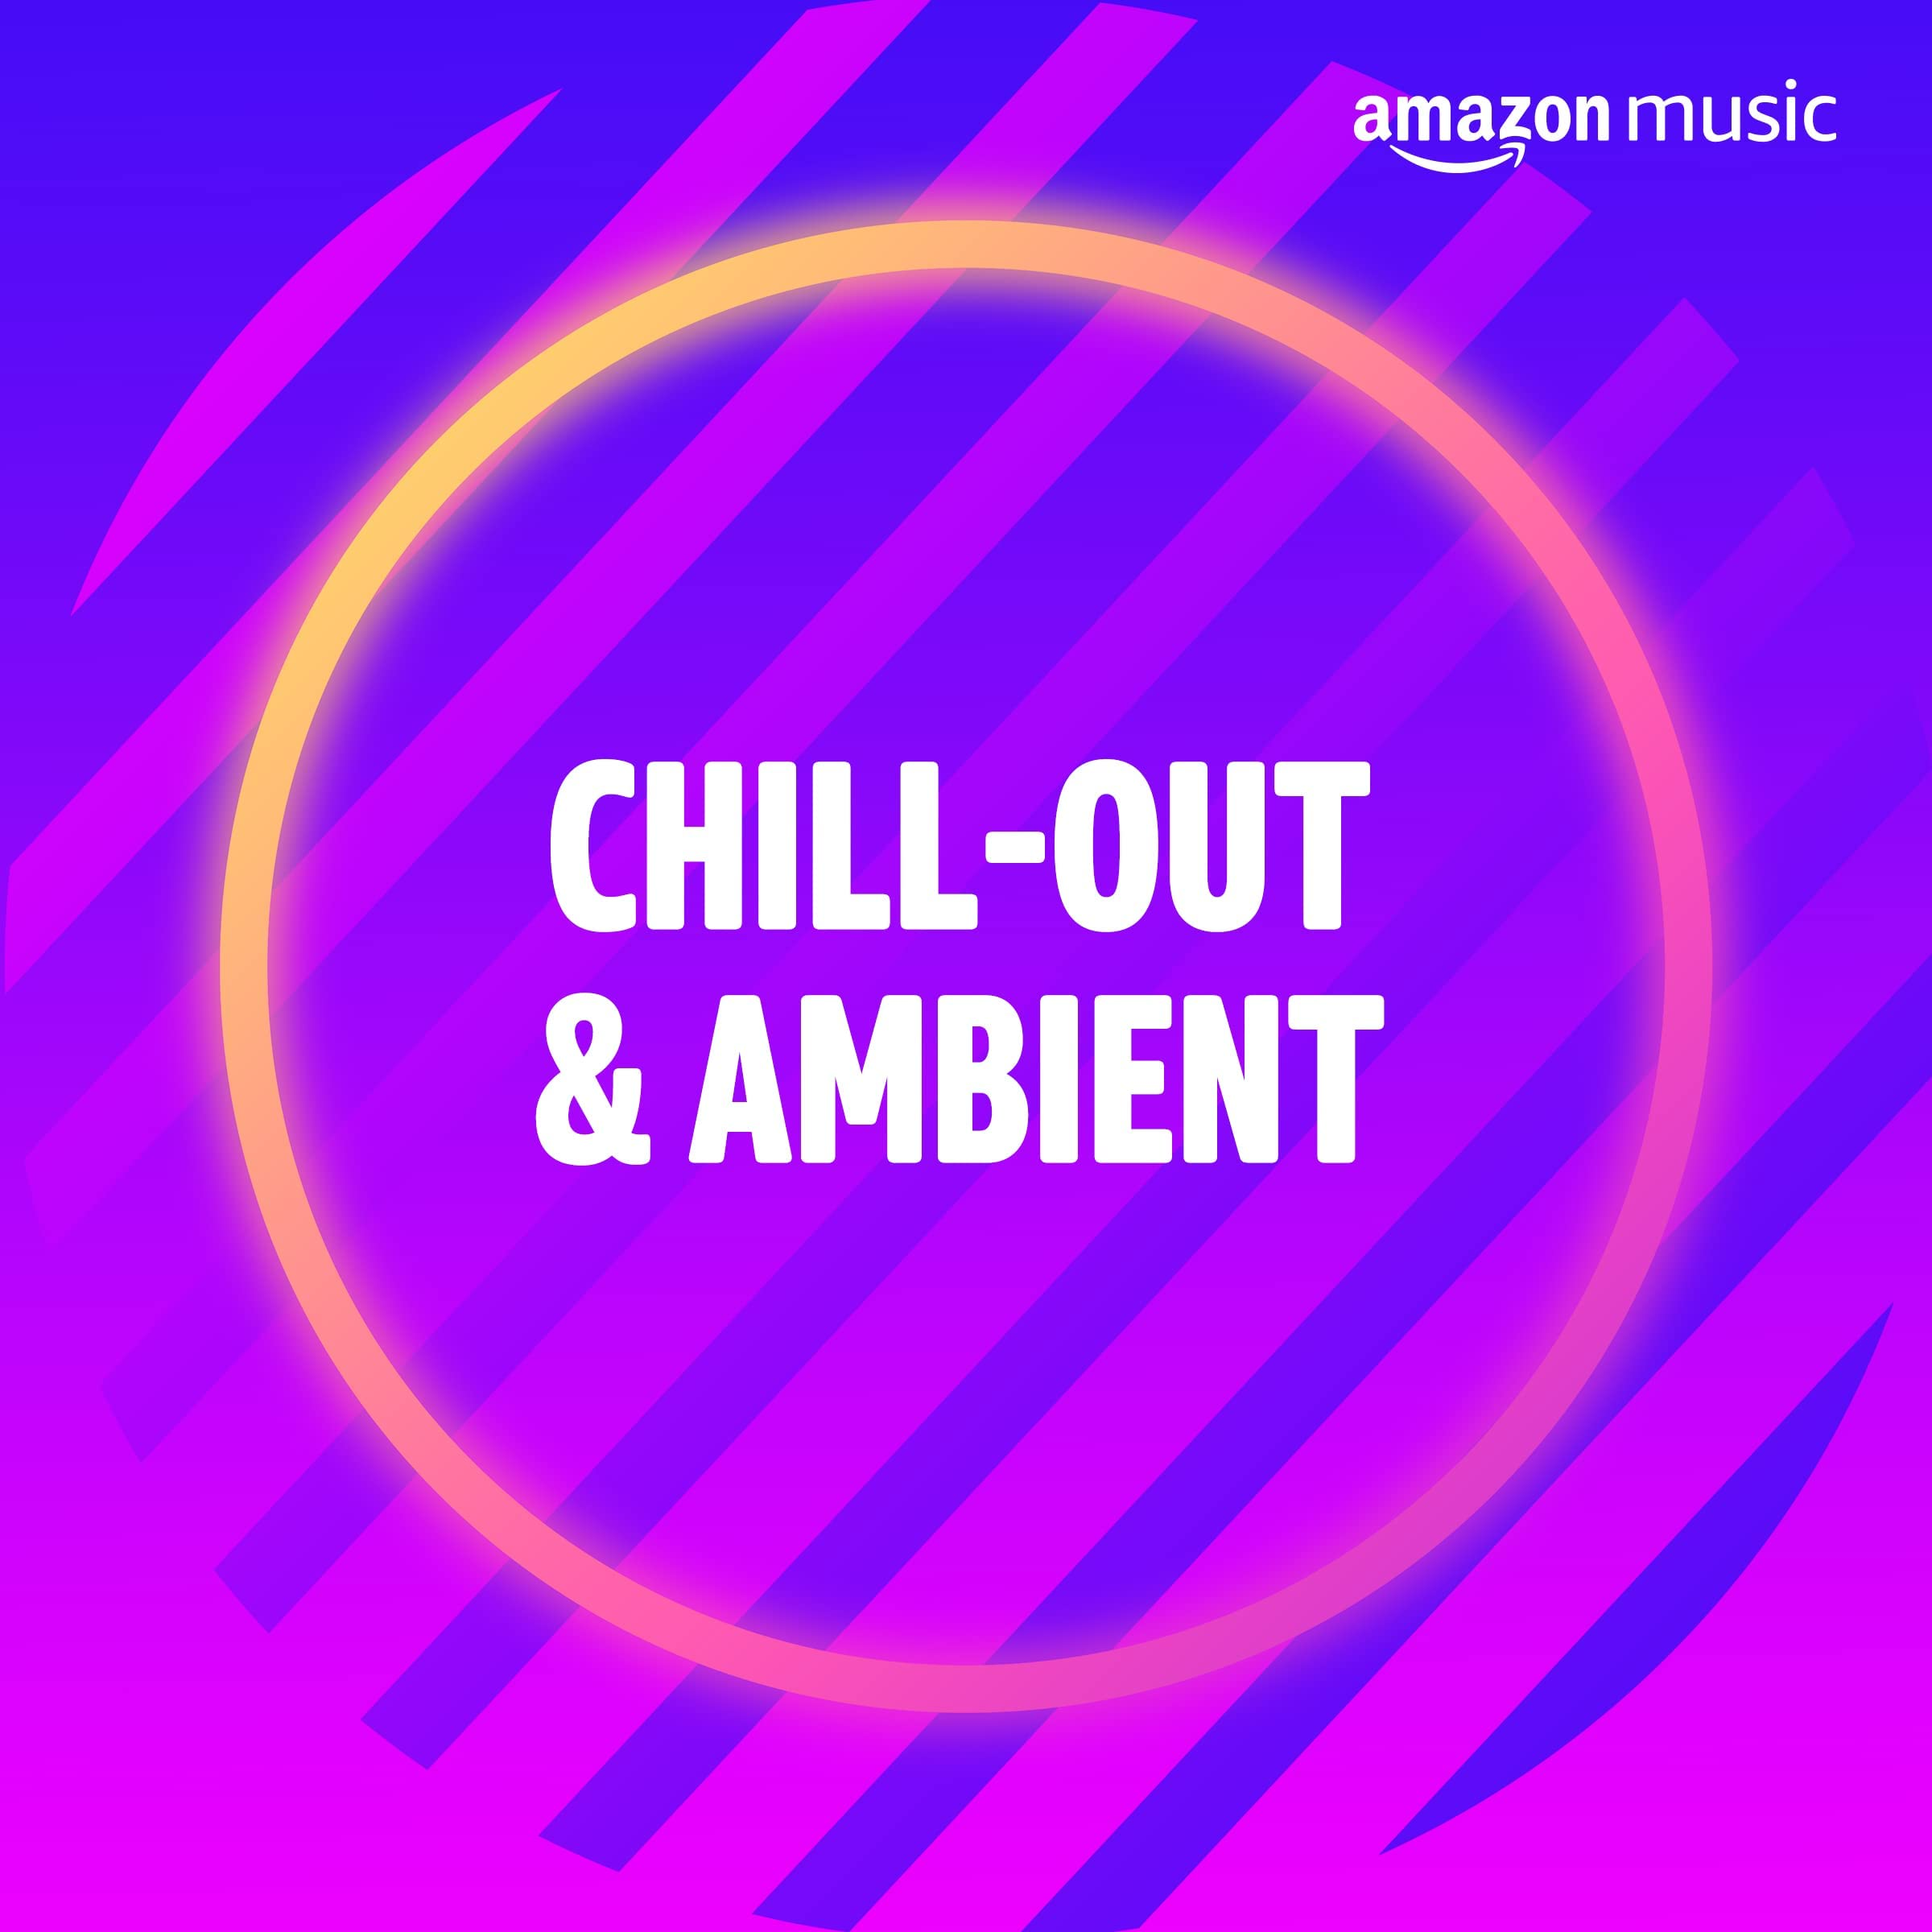 Chill-out y música Ambient